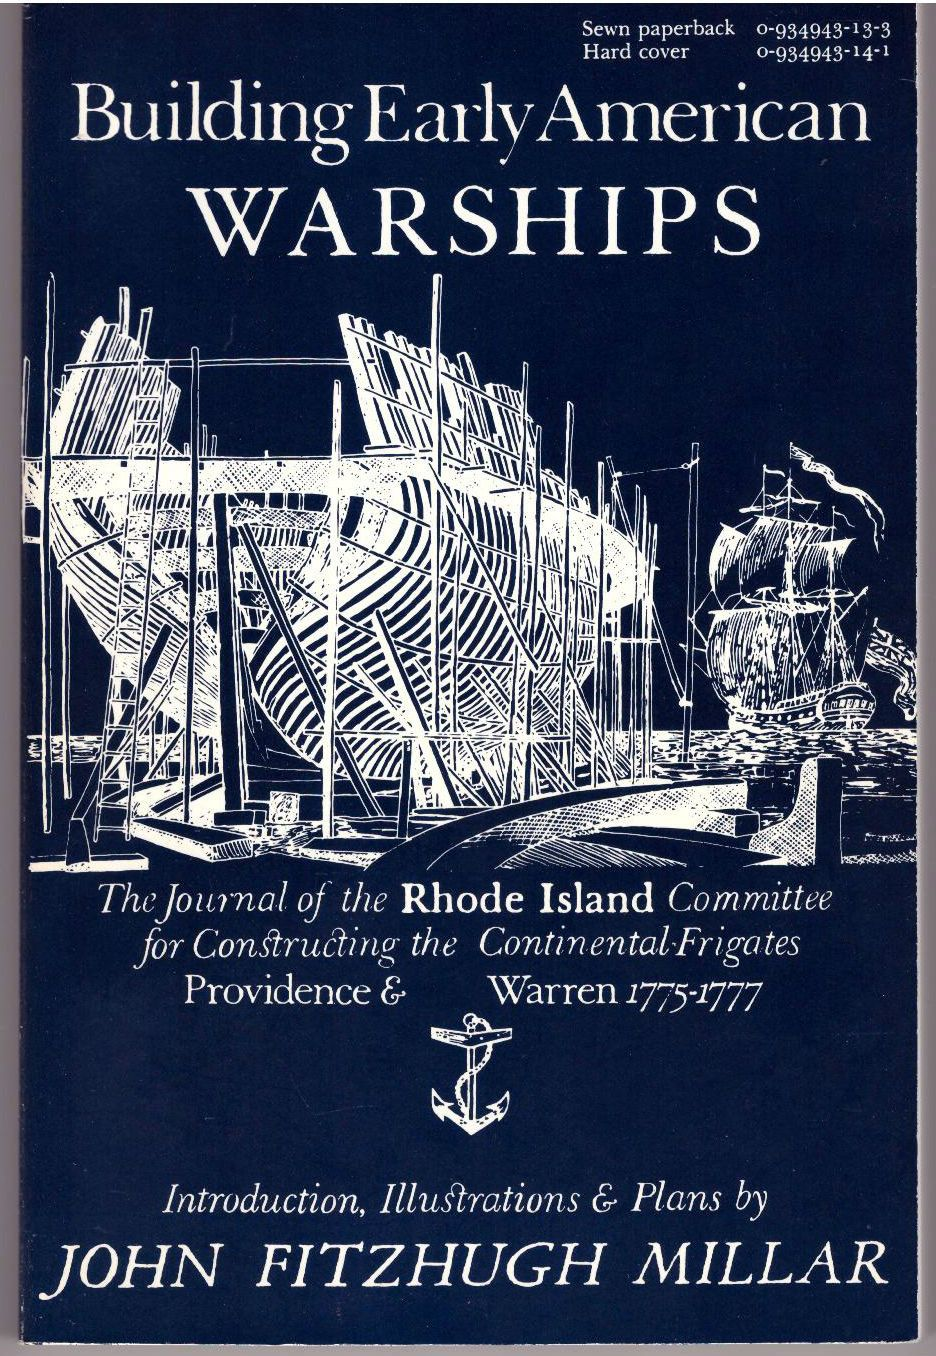 Building Early American Warships: The Journal of the Rhode Island Committee for Constructing the Continental Frigates Providence & Warren, 1775-1777